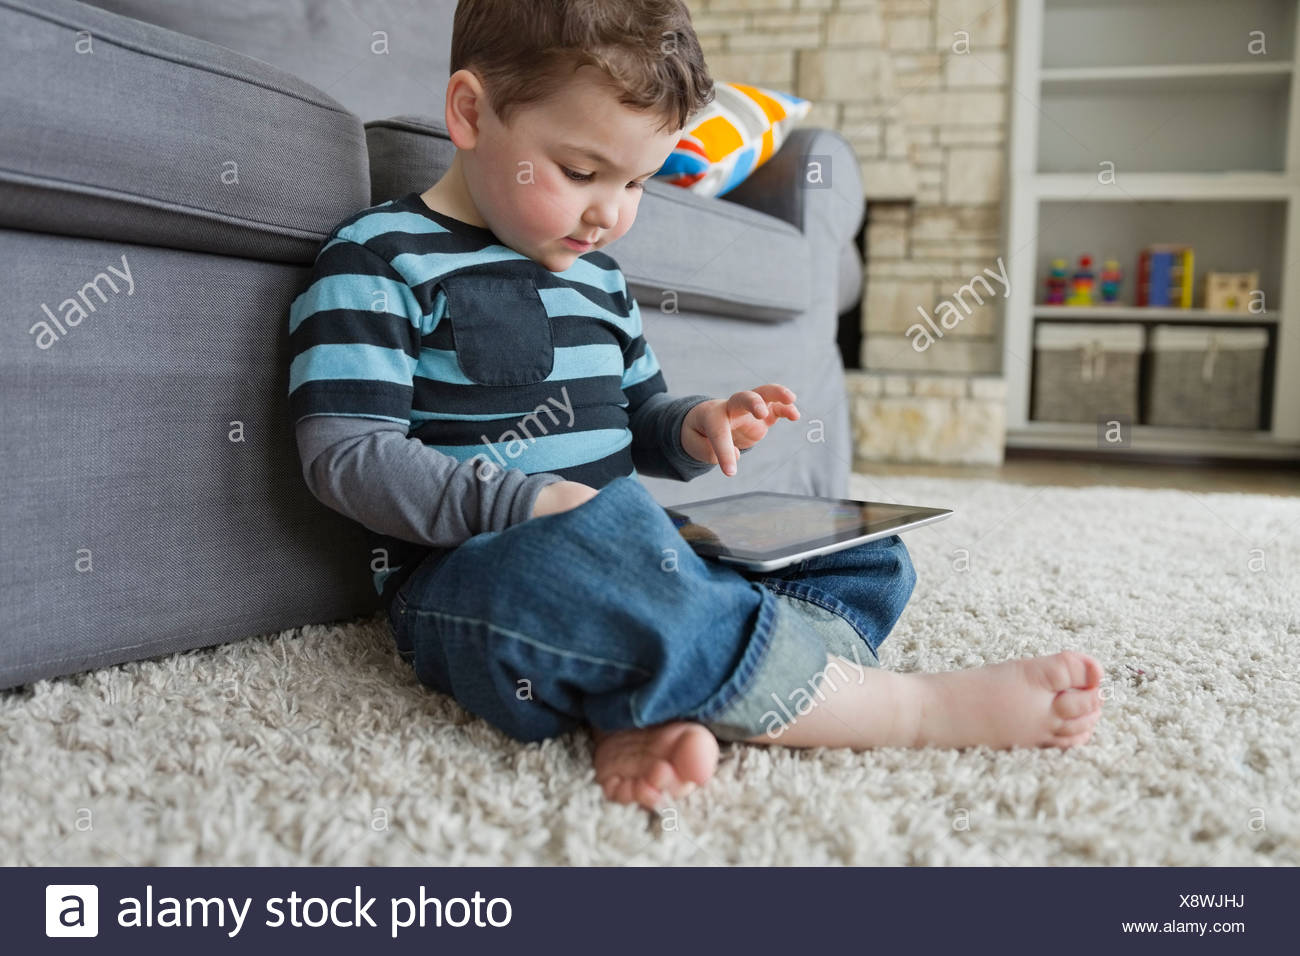 Little boy using digital tablet at home - Stock Image